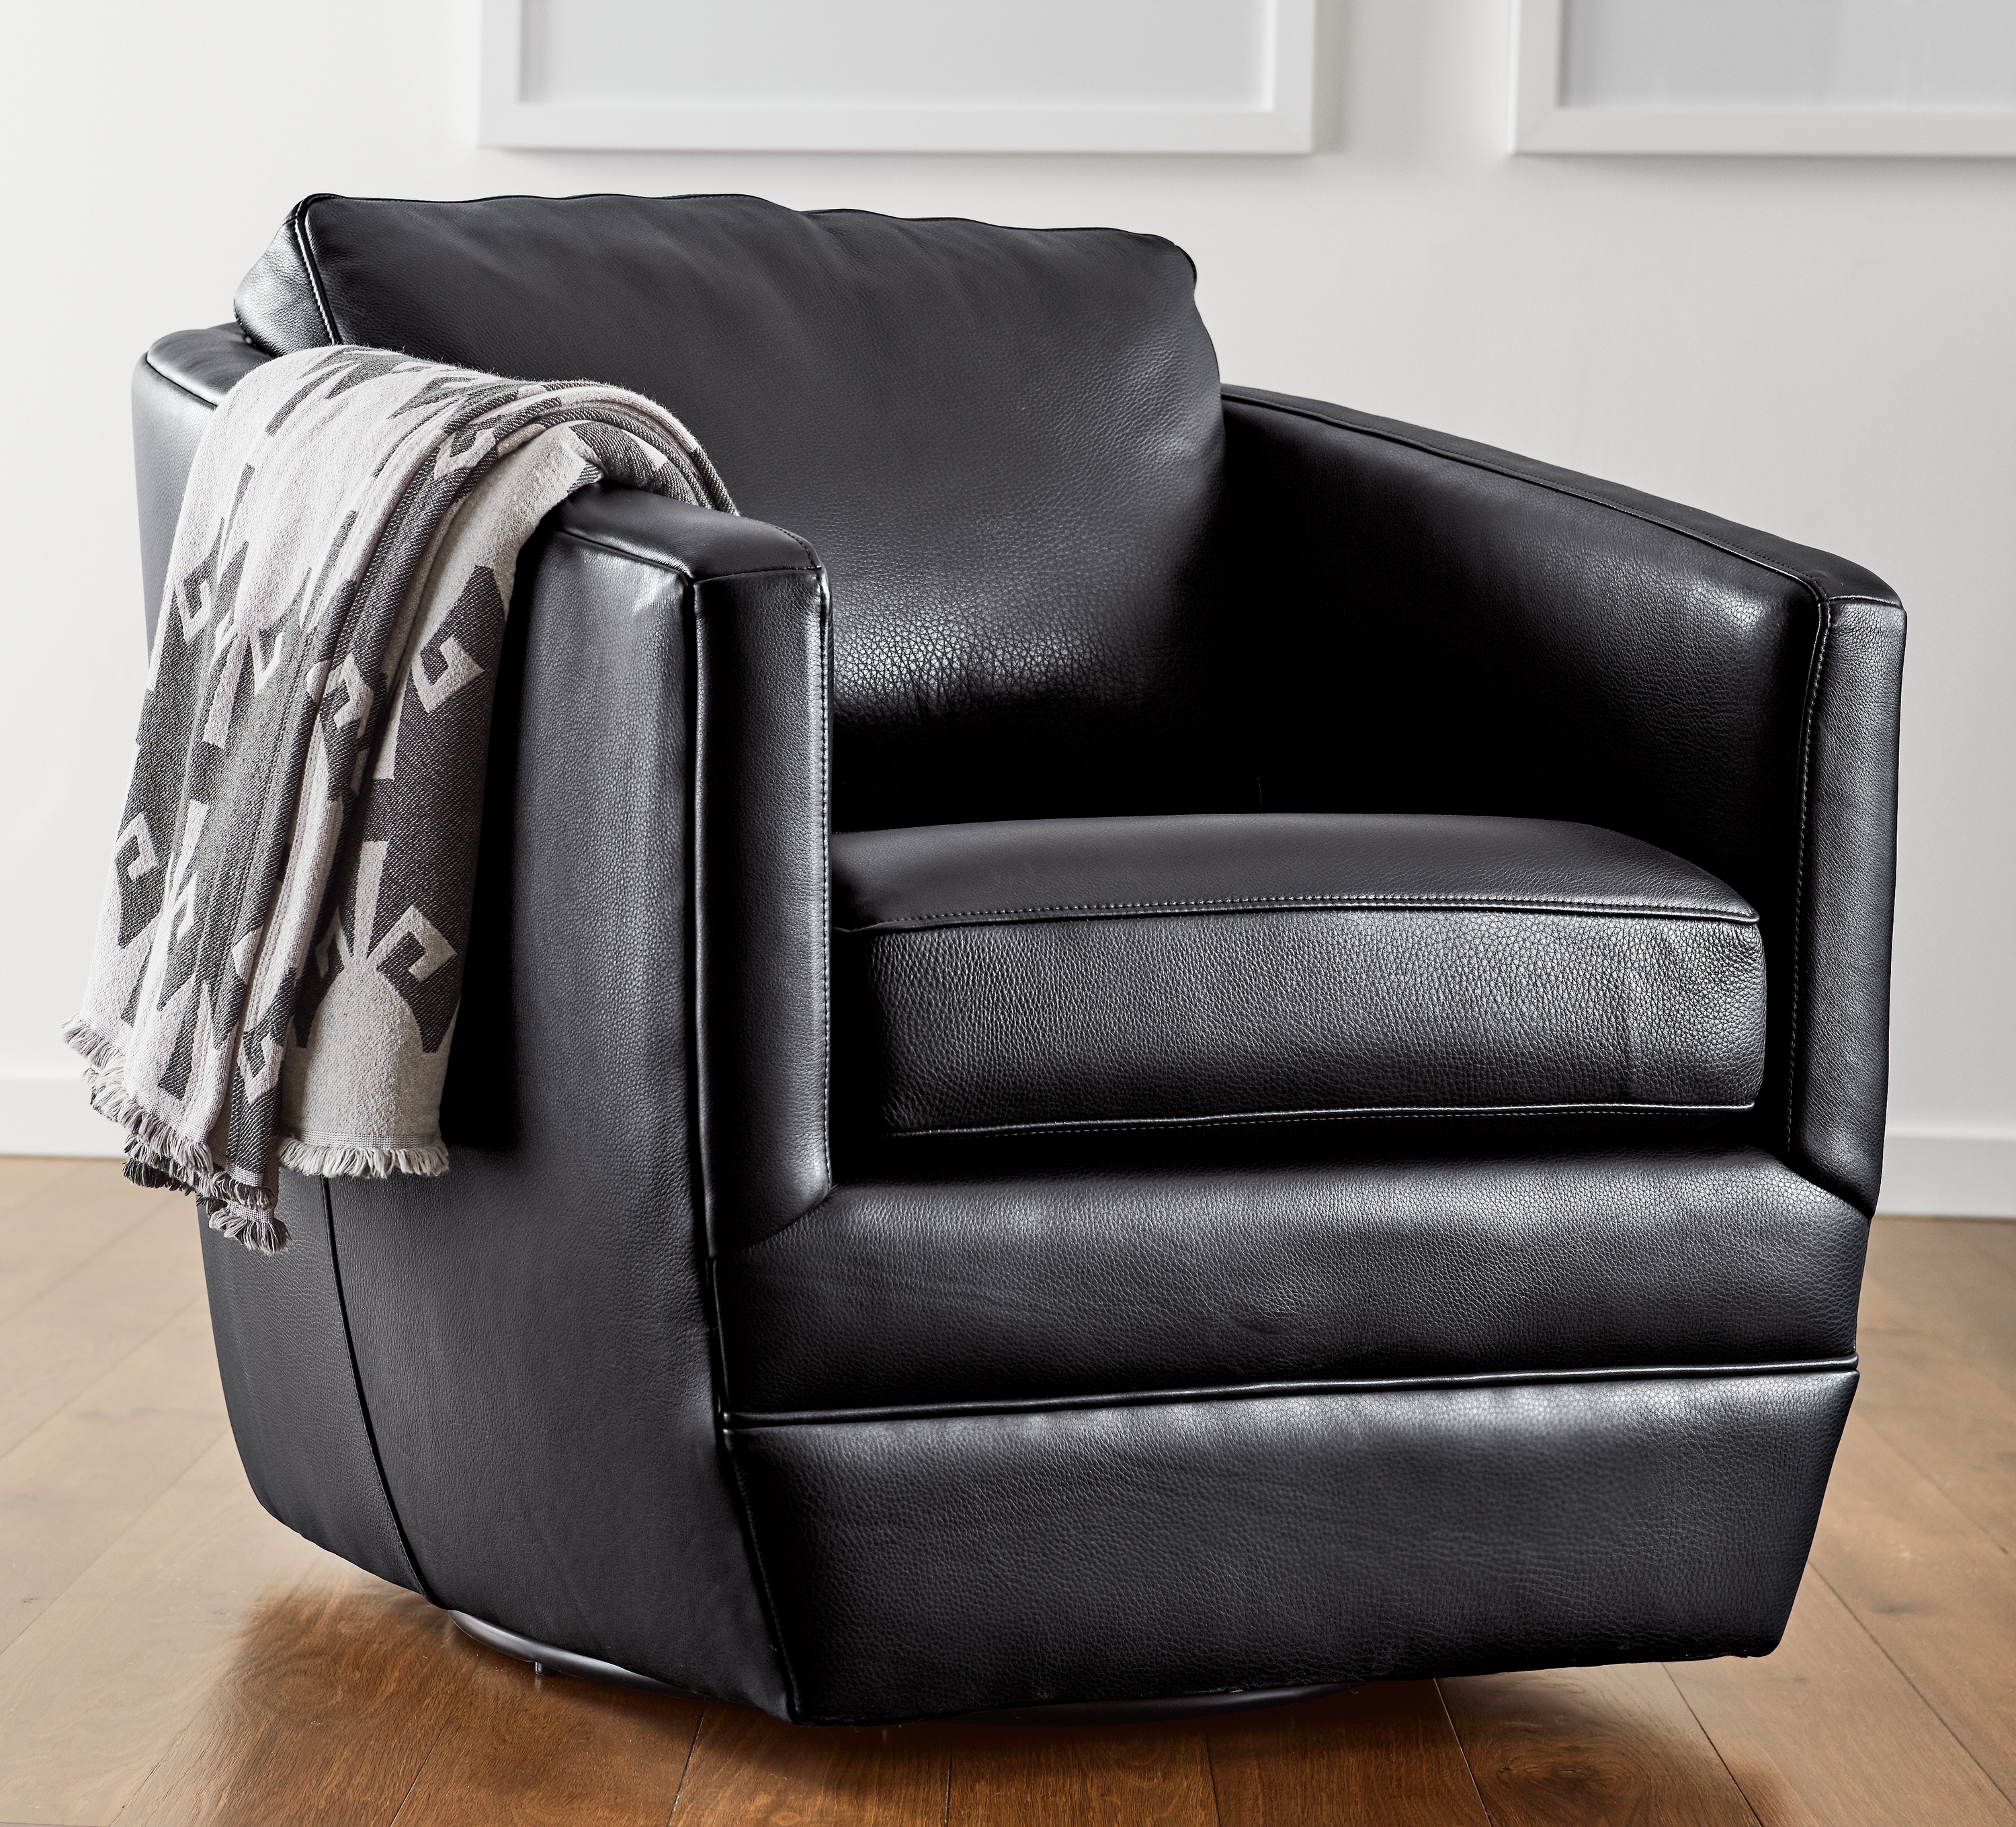 Room Board Ford Leather Swivel Chairs Modern Accent Lounge Chairs Modern Living Room Furniture In 2020 Swivel Chair Modern Leather Swivel Chair Modern Swivel Chair